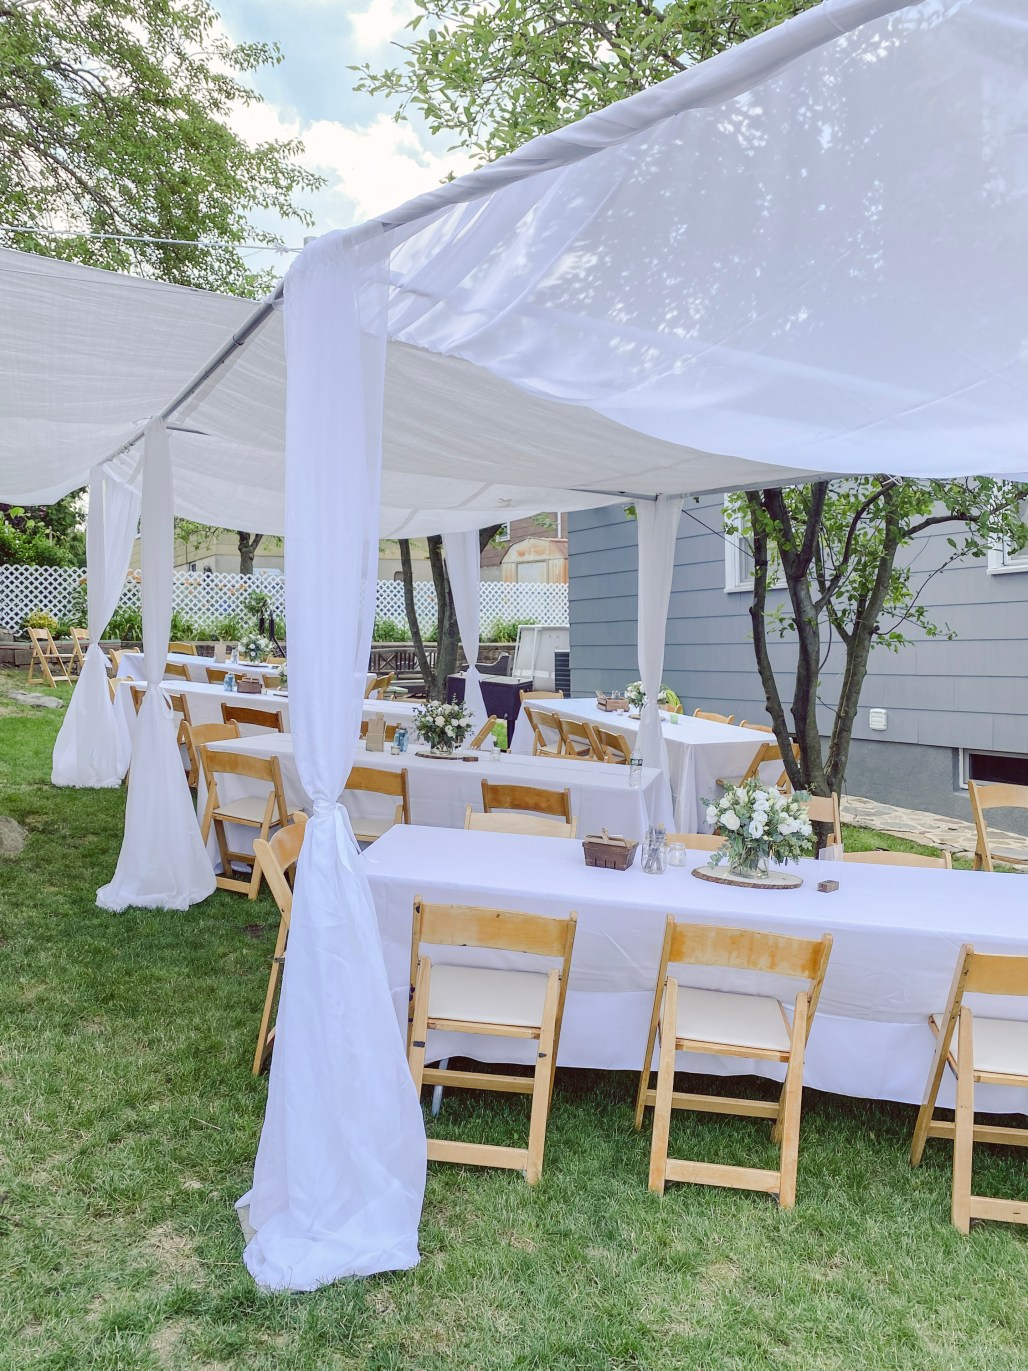 How to Have a Safe Outdoor Party at Home during Covid-19 || Dreamery Events